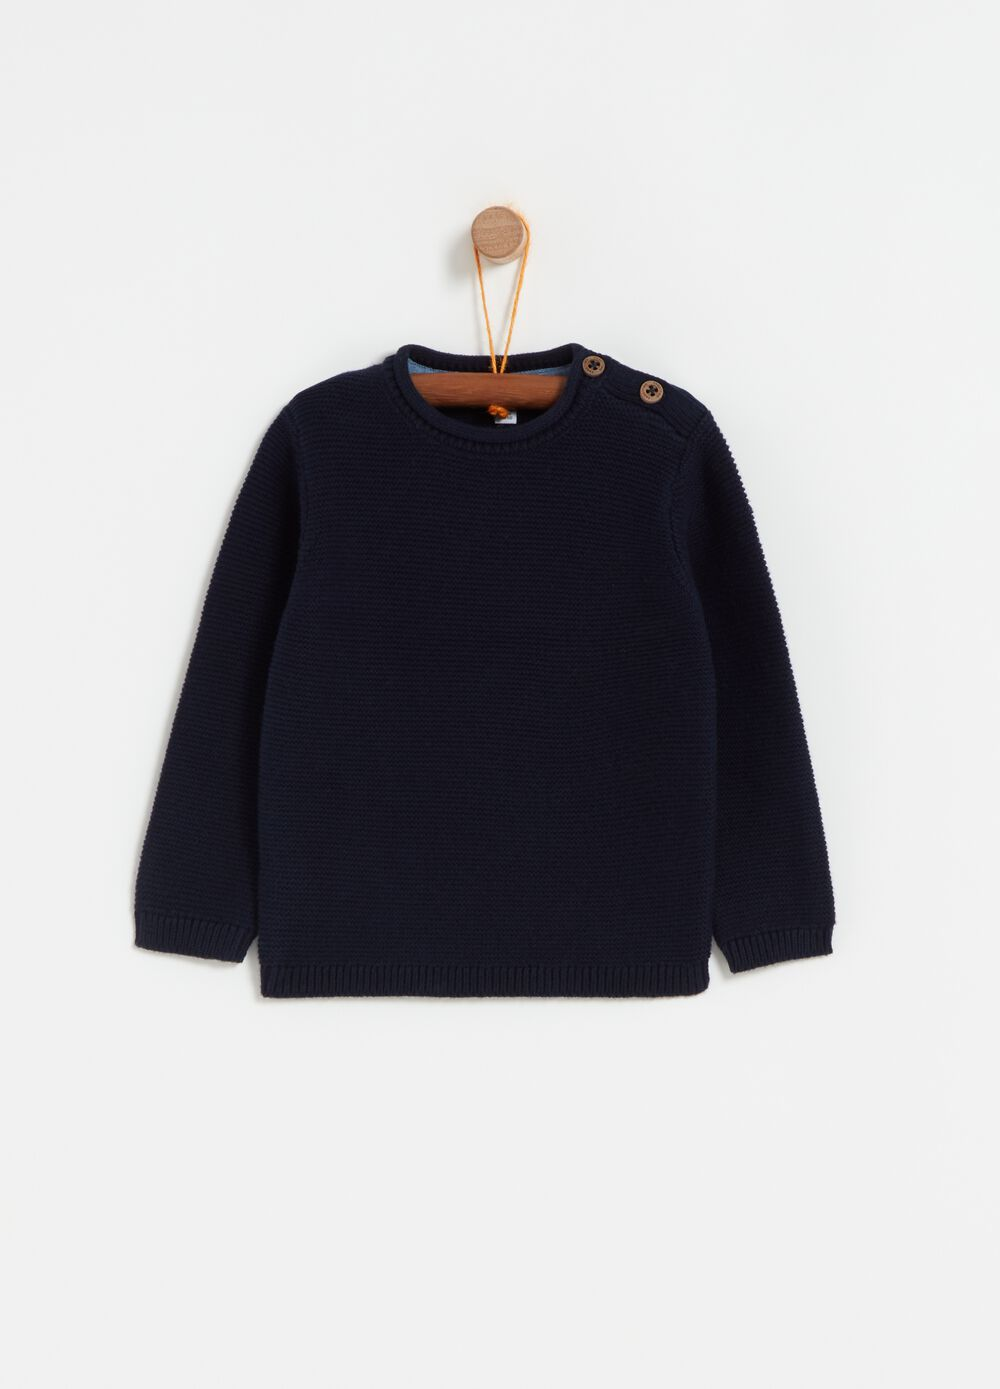 Knitted pullover in 100% cotton with buttons